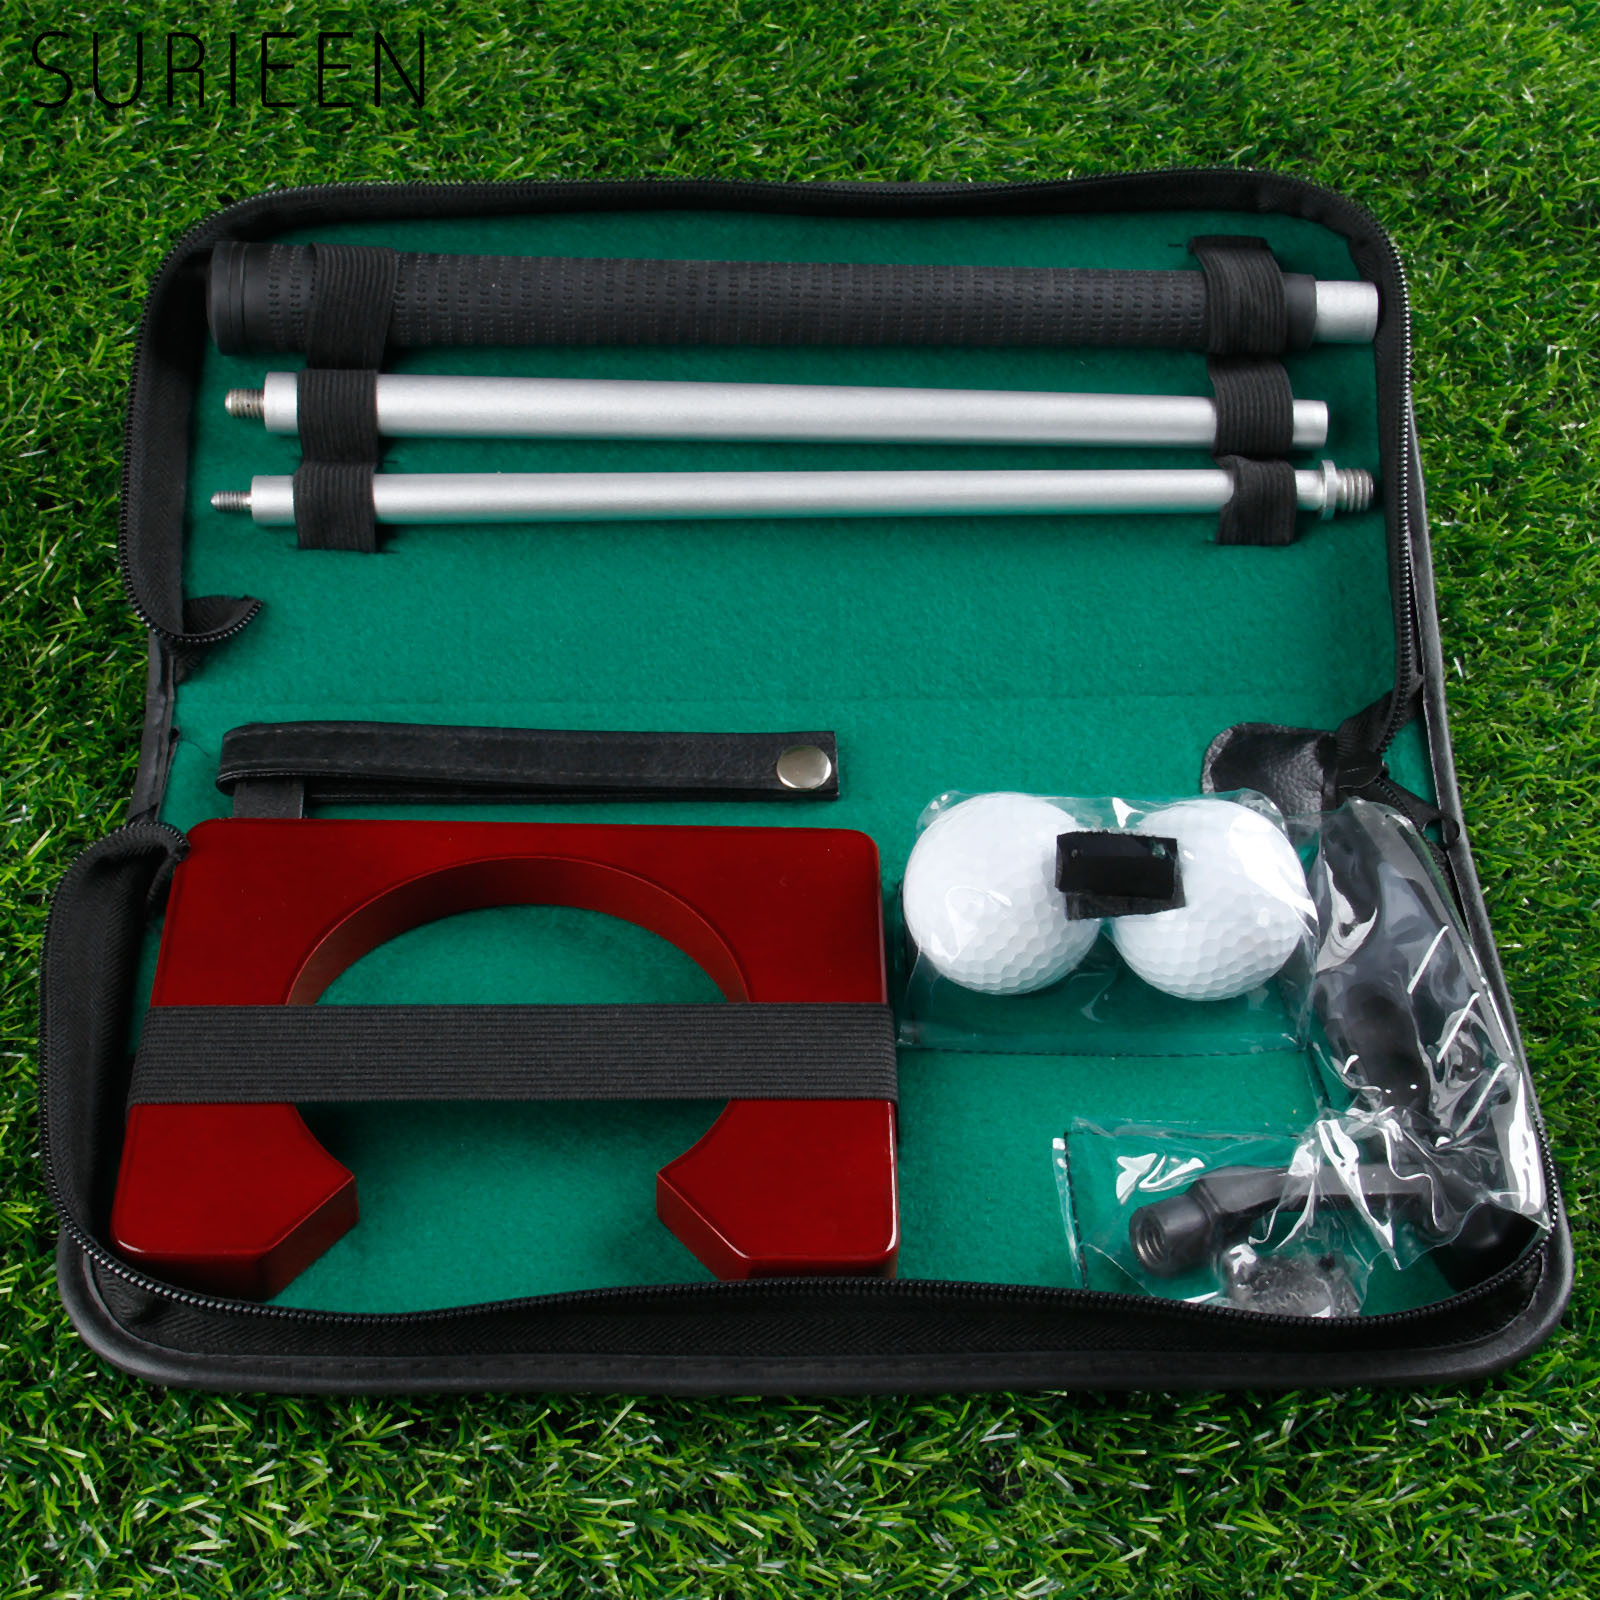 Portable Golf Tranning Aids Indoor Outdoor Golf Ball Holder Golf Putter Putting Practice Kit Golfer Training Set With Case kožne rukavice bez prstiju